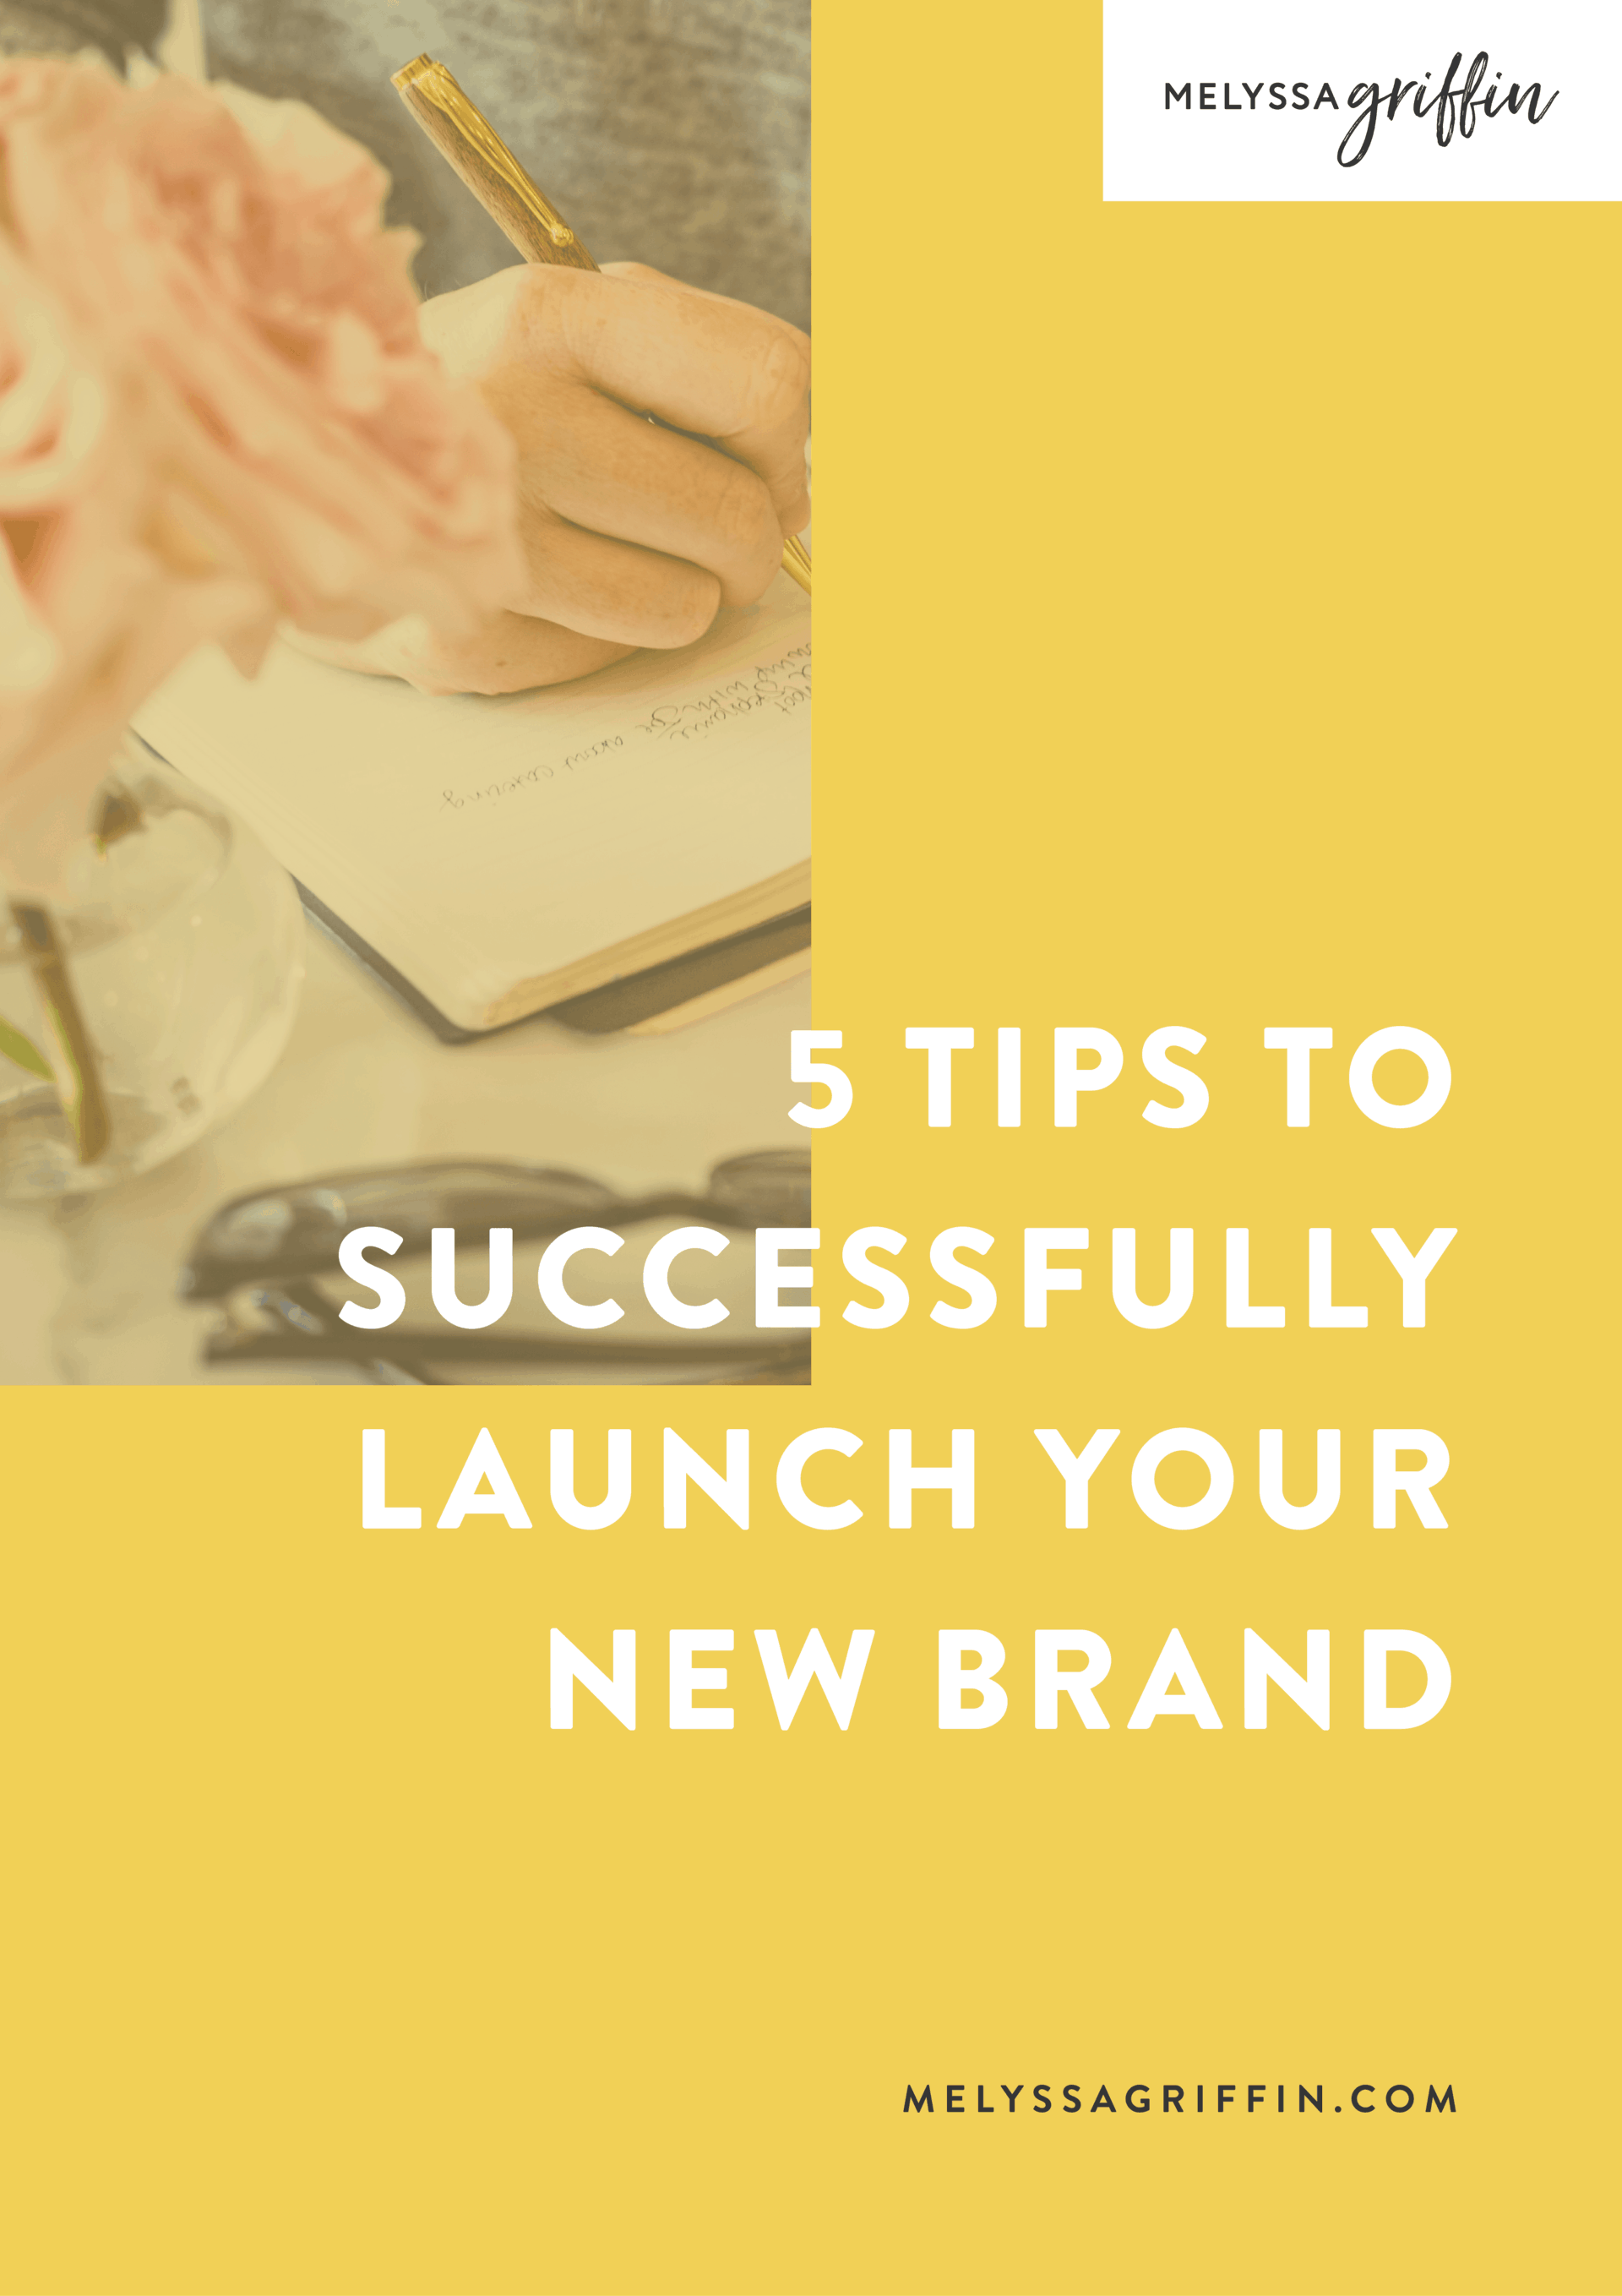 5 Tips To Successfully Launch Your New Brand Product